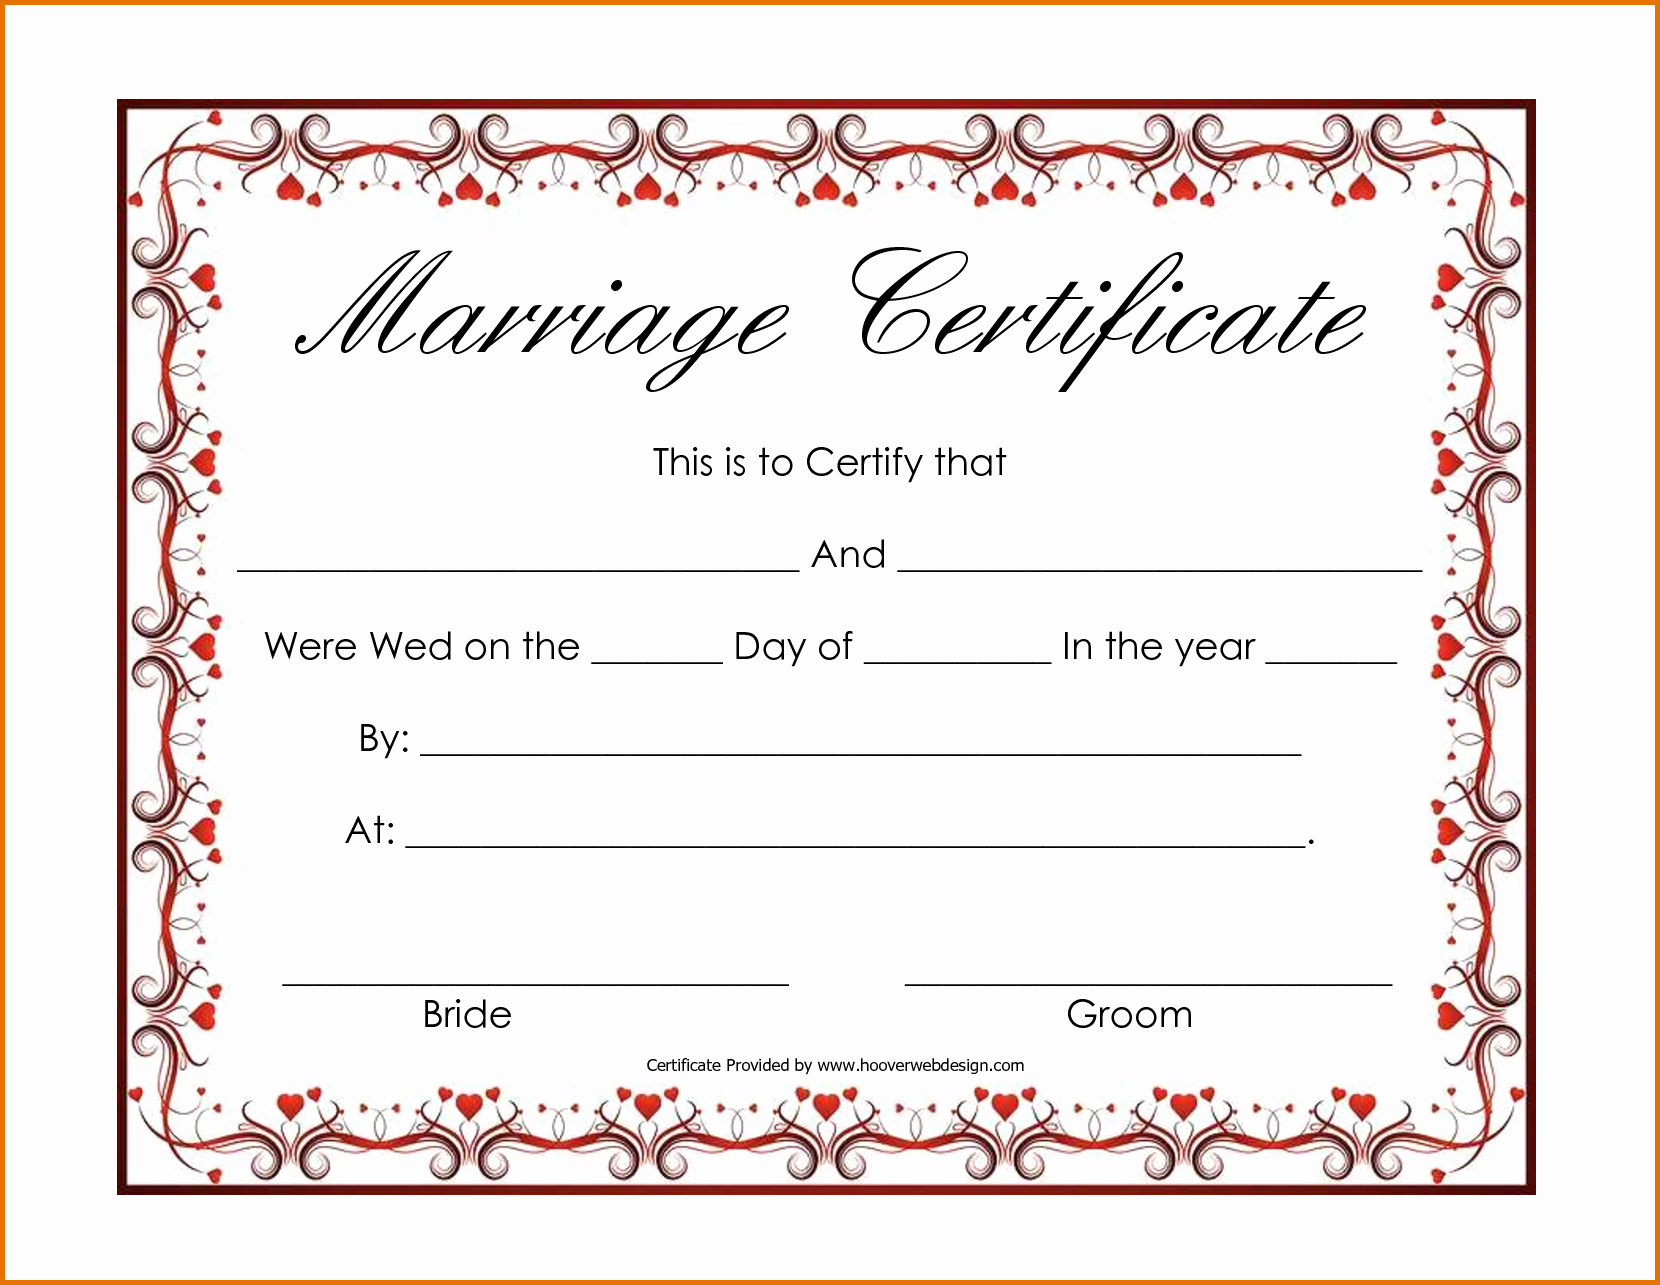 Free Marriage Certificate Template Elegant Blank Marriage Certificate Templatereference Letters Words